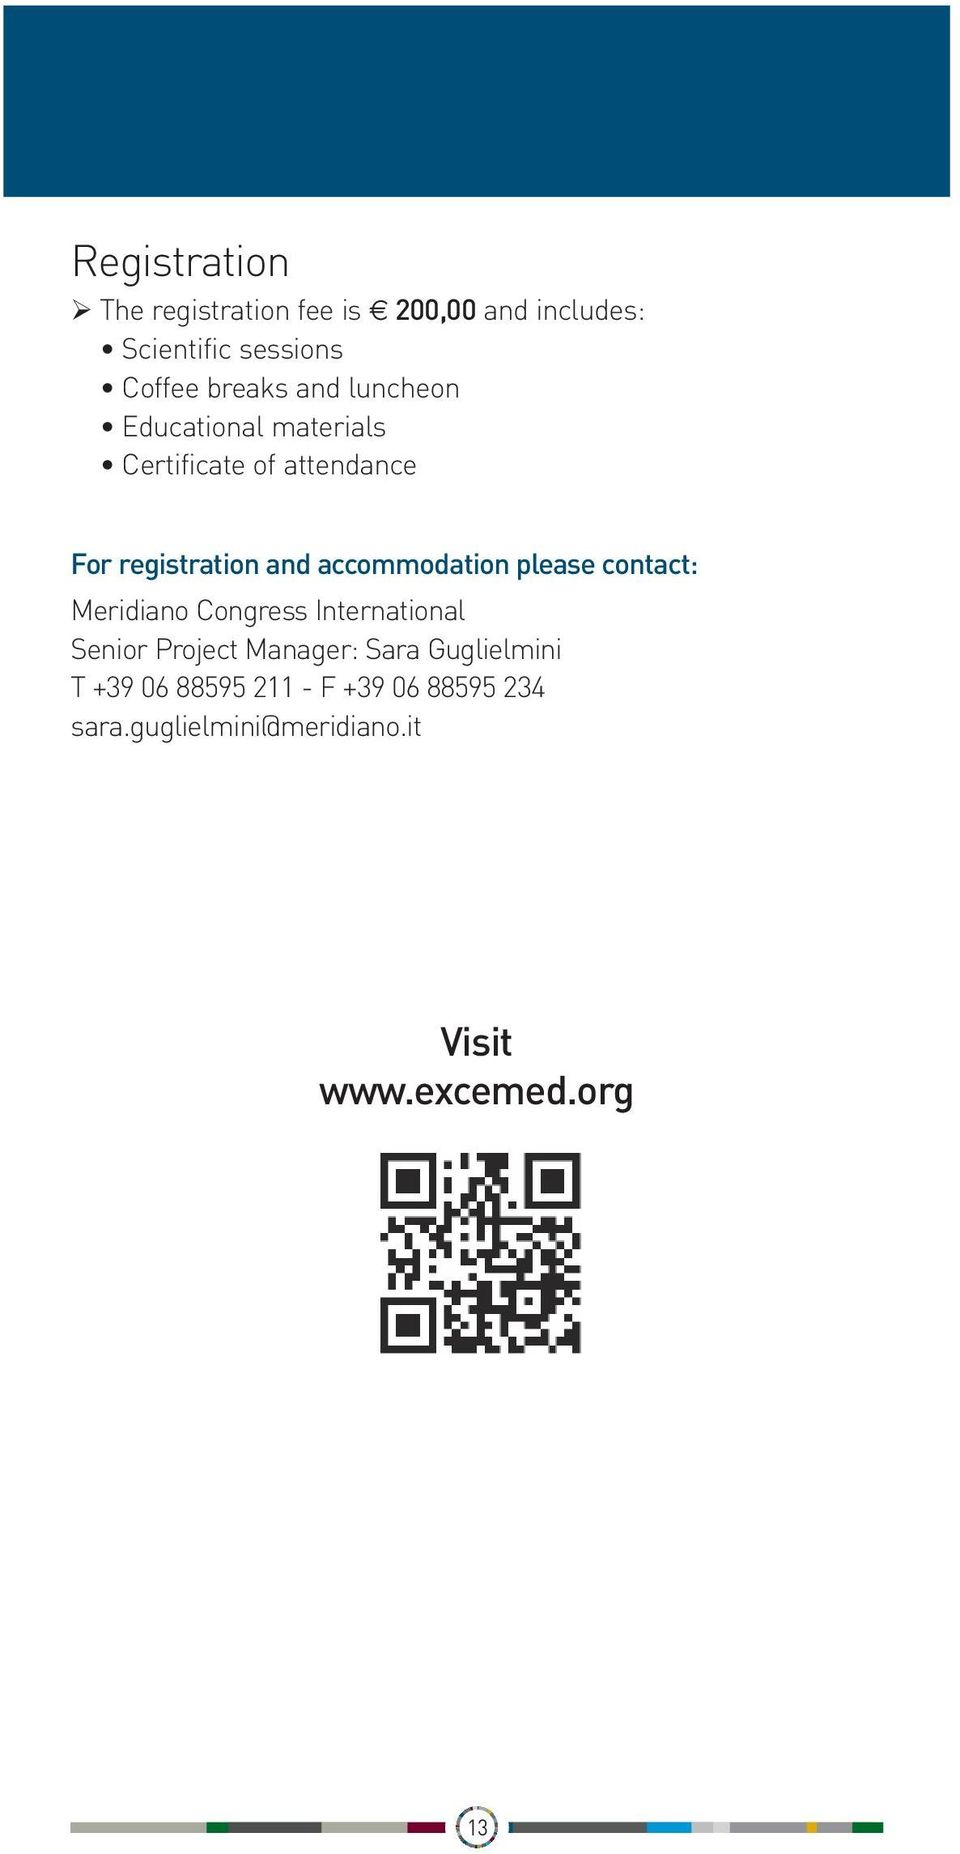 accommodation please contact: Meridiano Congress International Senior Project Manager: Sara